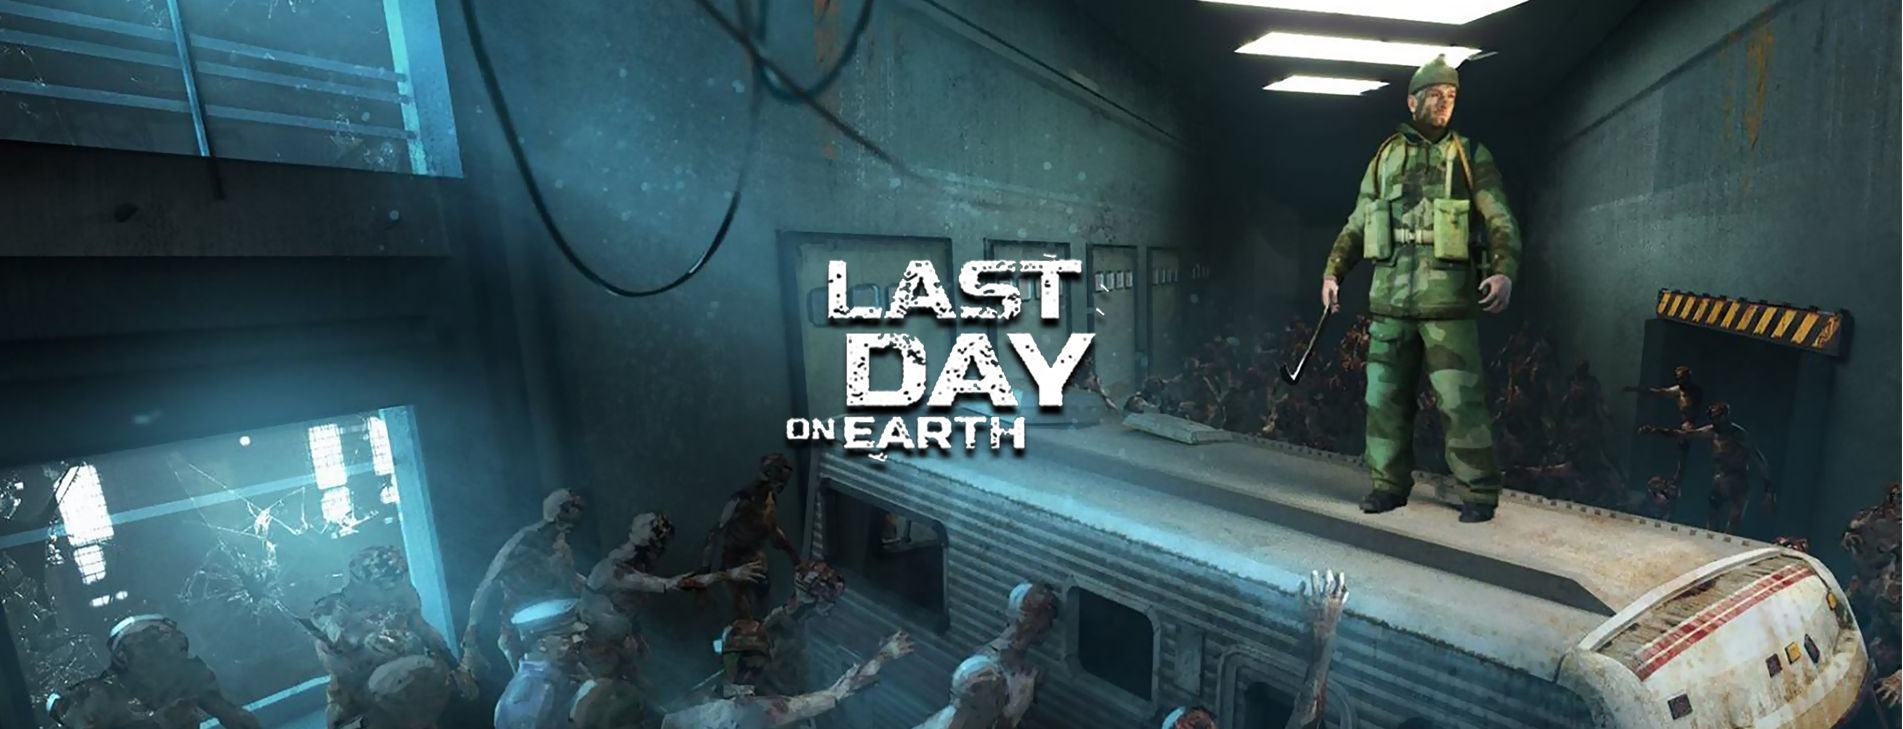 Game Localization Last Day on Earth by Kefir